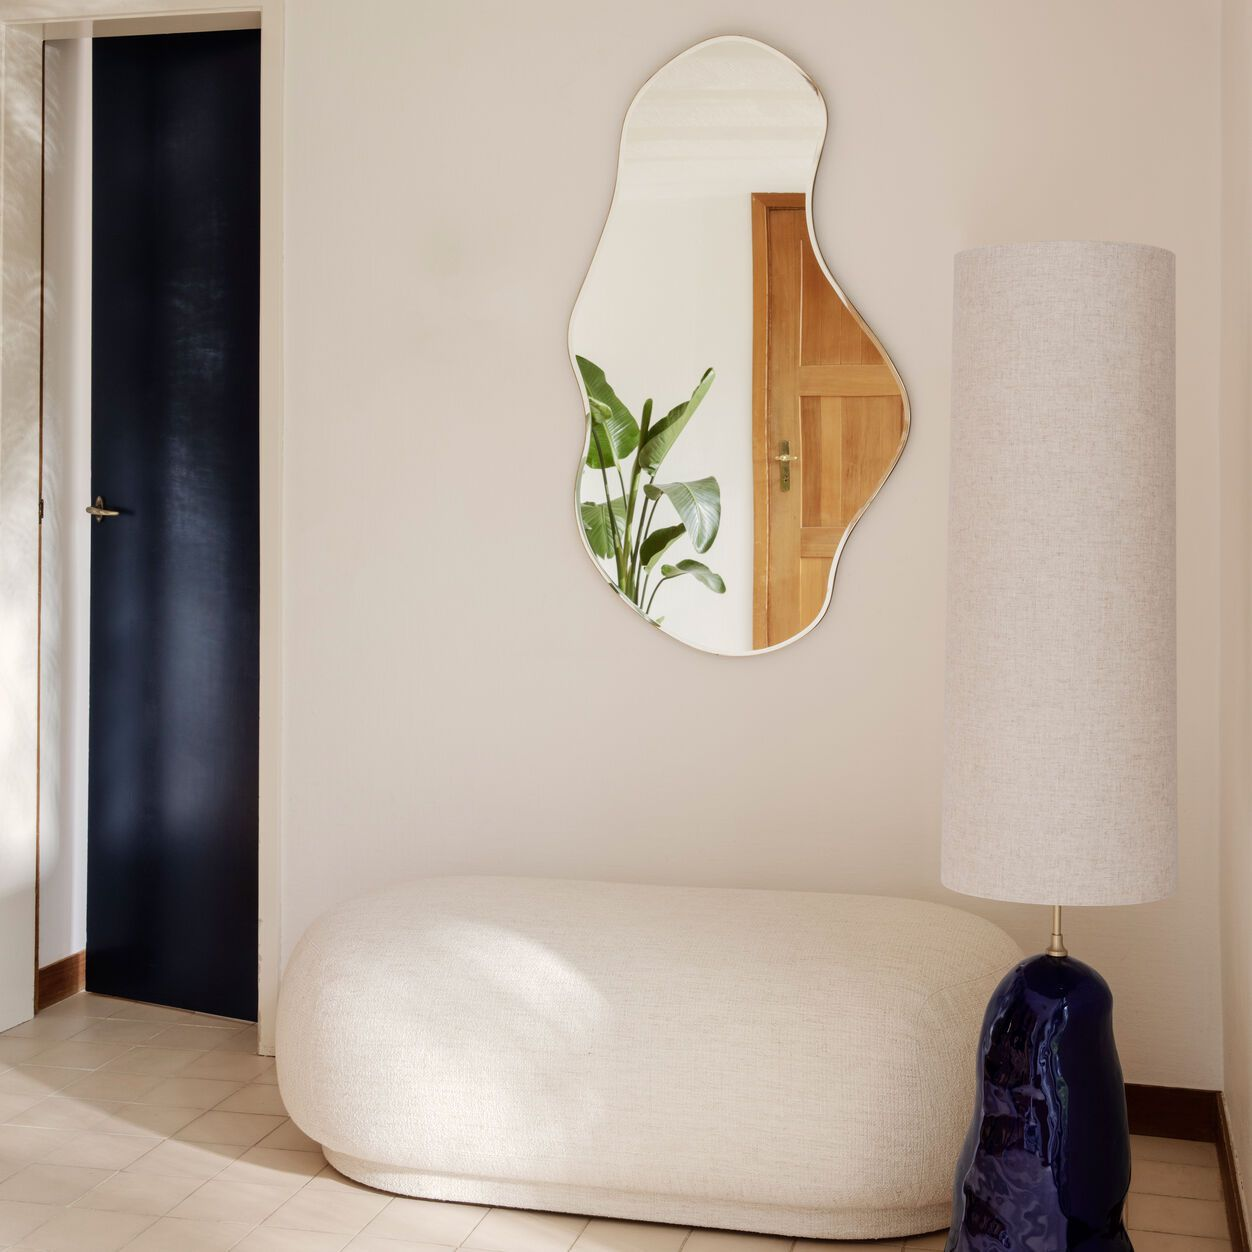 An abstract statement mirror, currently for sale at MoMA Design Store